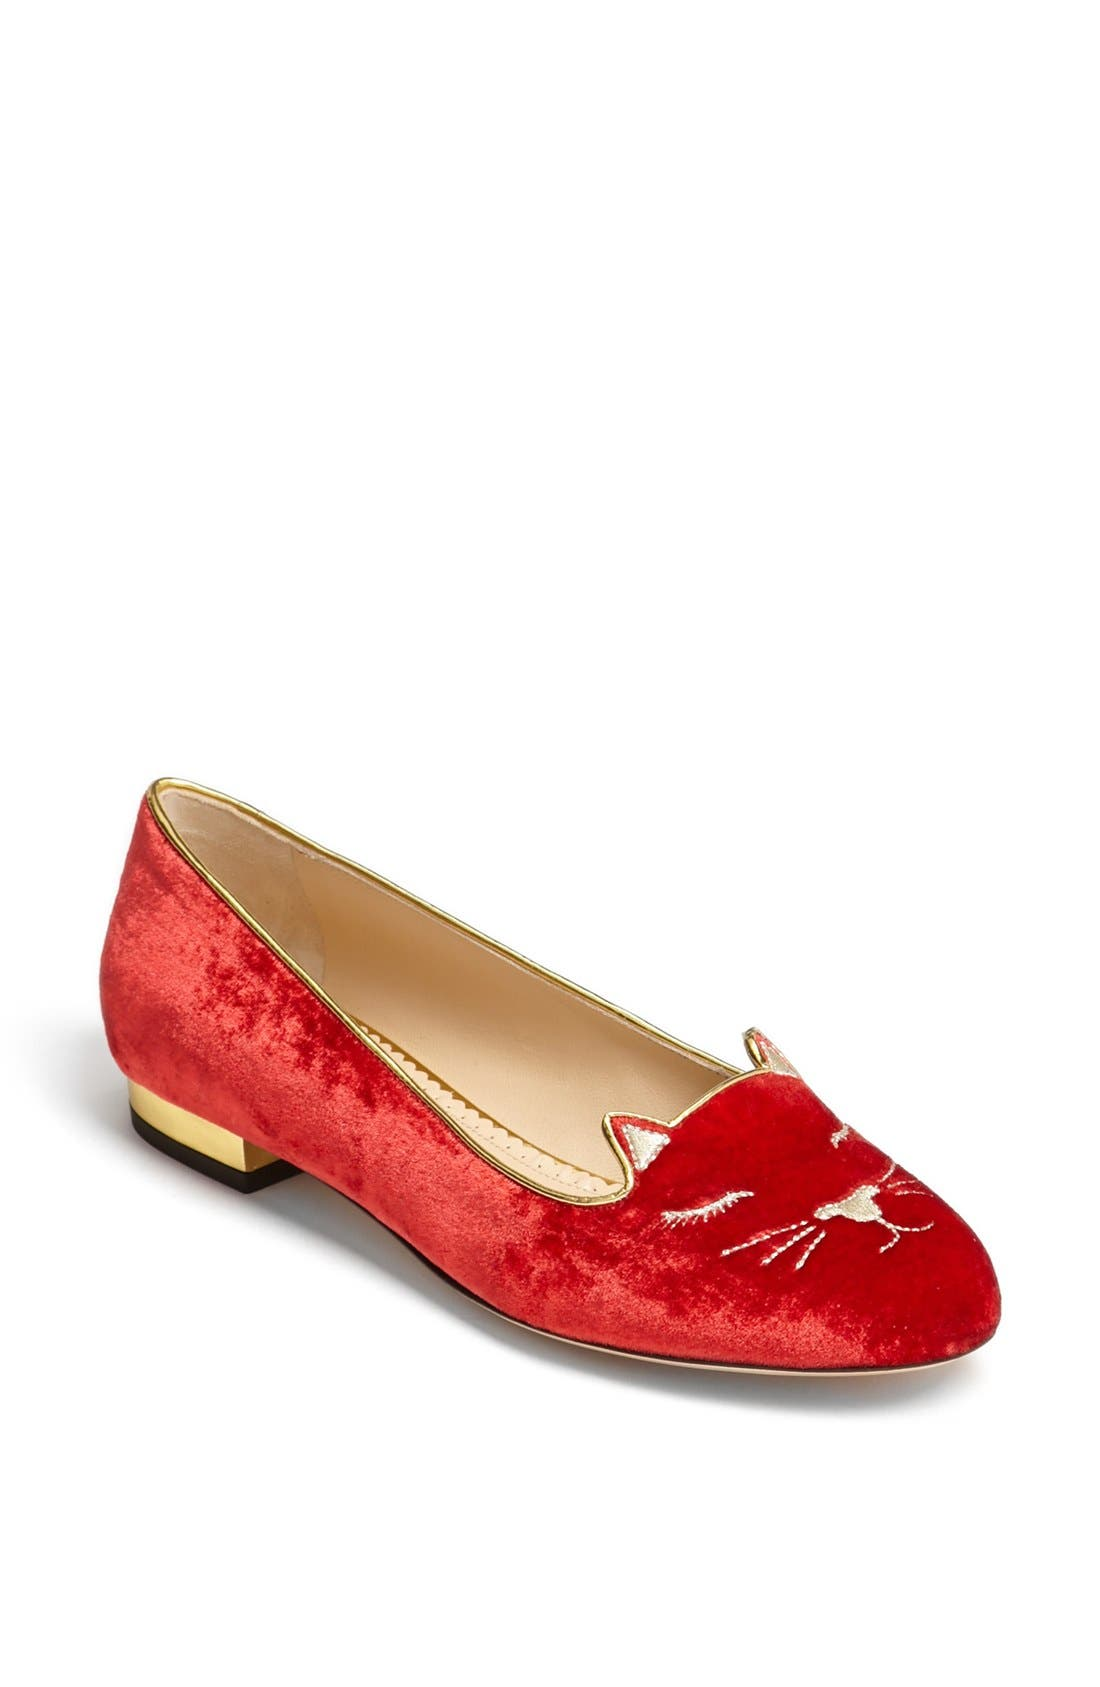 Alternate Image 1 Selected - Charlotte Olympia 'Sleeping Kitty' Flat